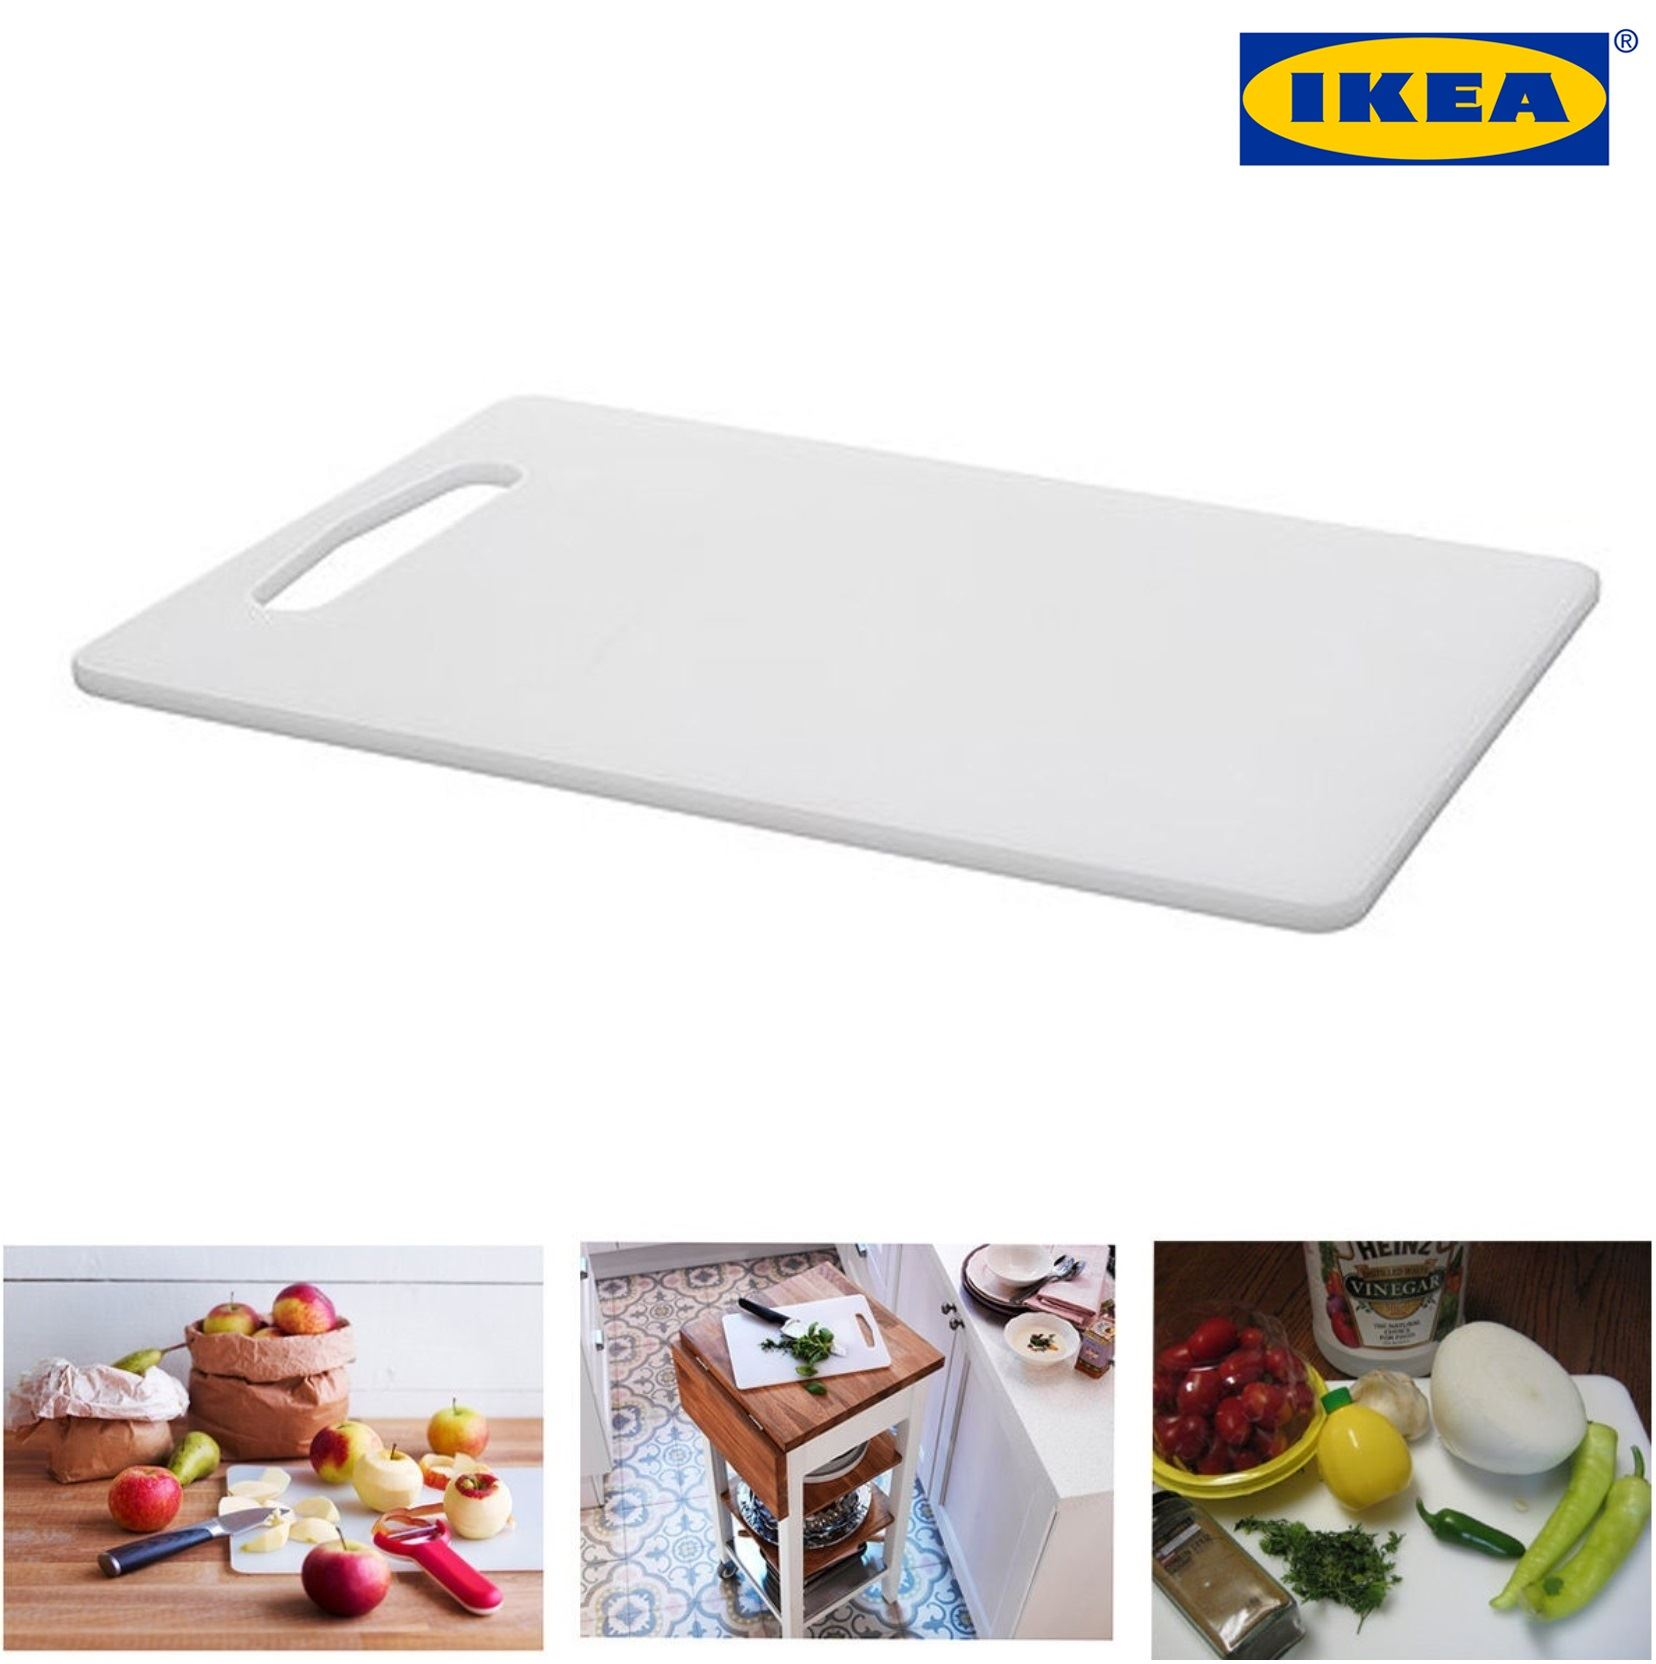 IKEA LEGITIM Best Durable Quality White Chopping Board